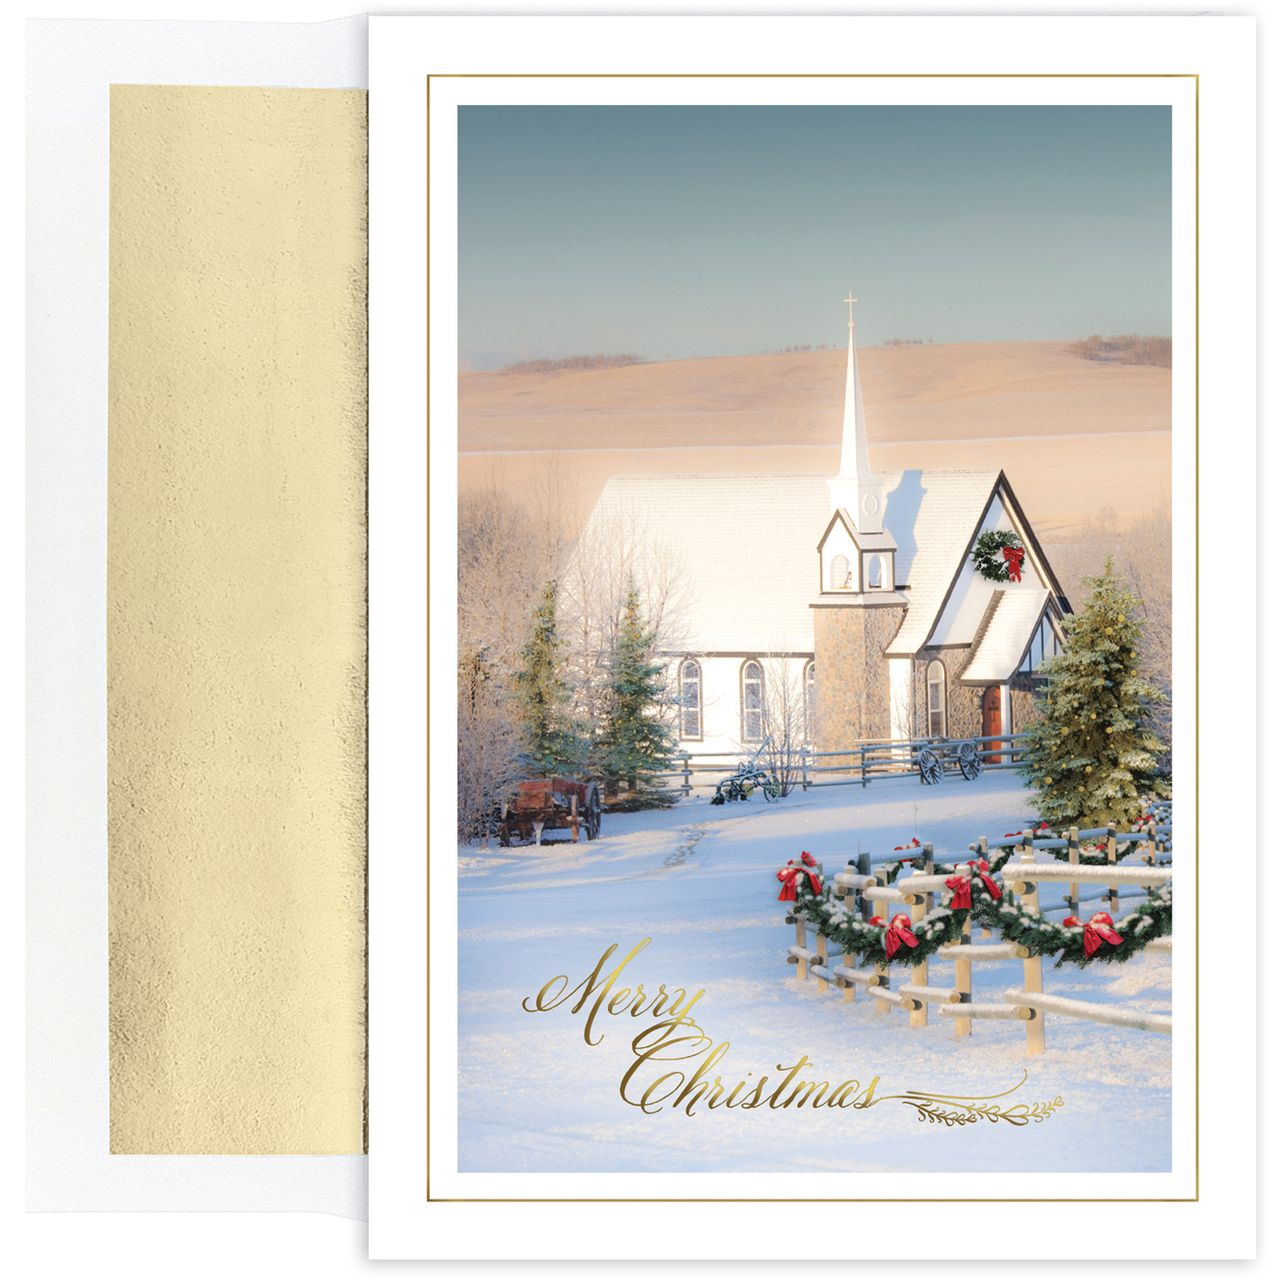 Country church religious christmas card religious christmas cards masterpiece cards masterpiece country church set of 18 boxed holiday greeting cards with envelopes kristyandbryce Choice Image